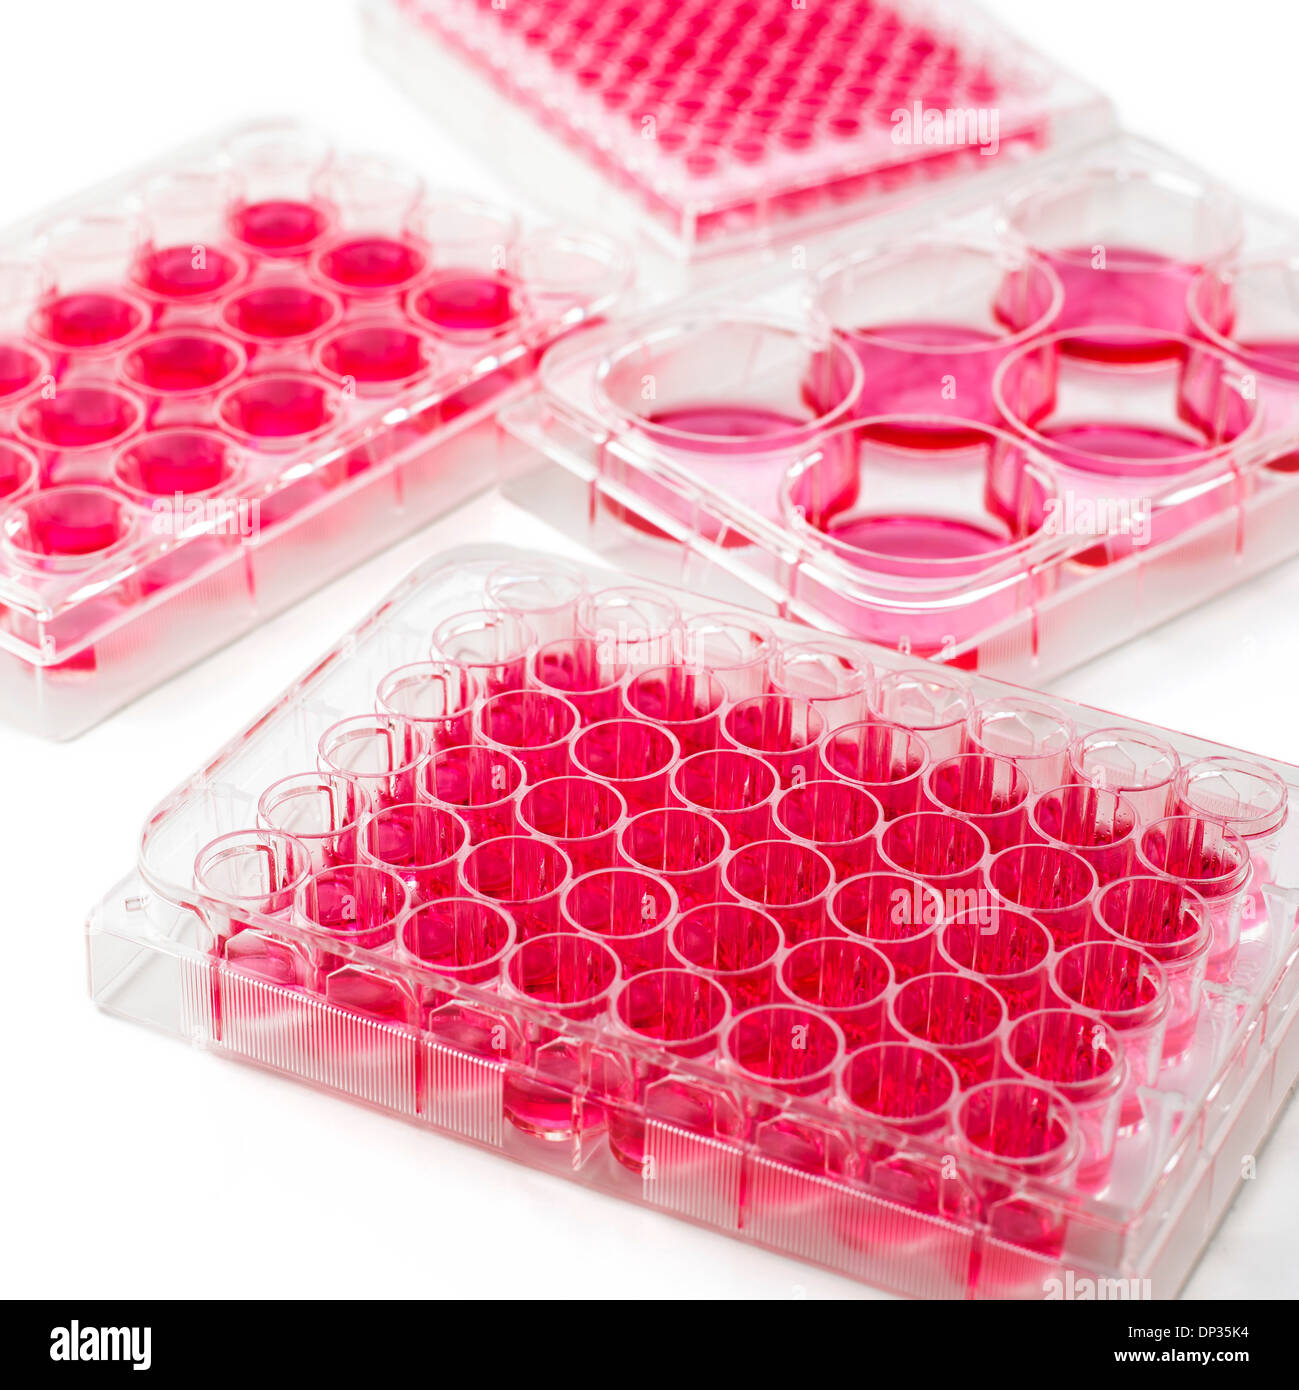 Cell culture plates - Stock Image